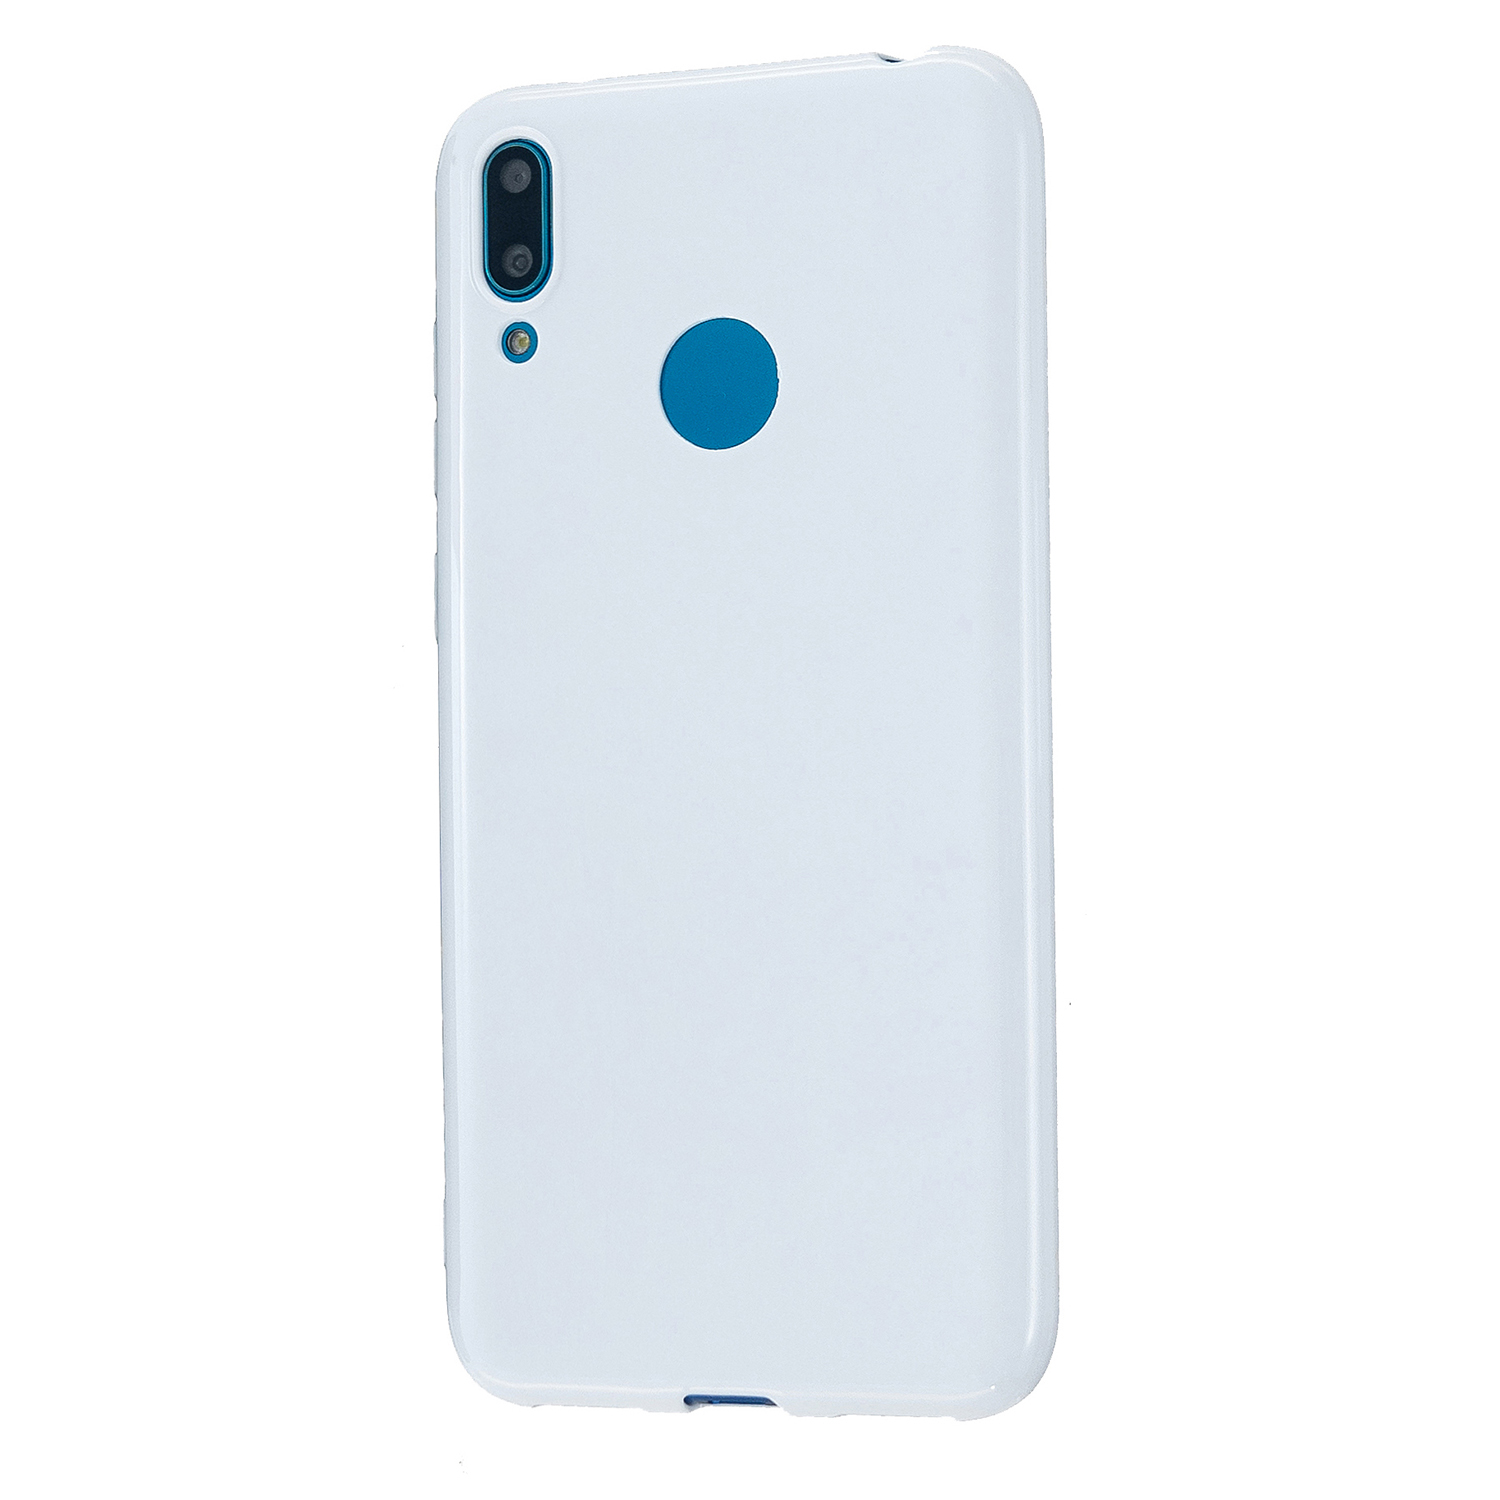 For HUAWEI Y6/Y7 Prime 2019 Glossy TPU Phone Case Mobile Phone Soft Cover Full Body Protection Milk white